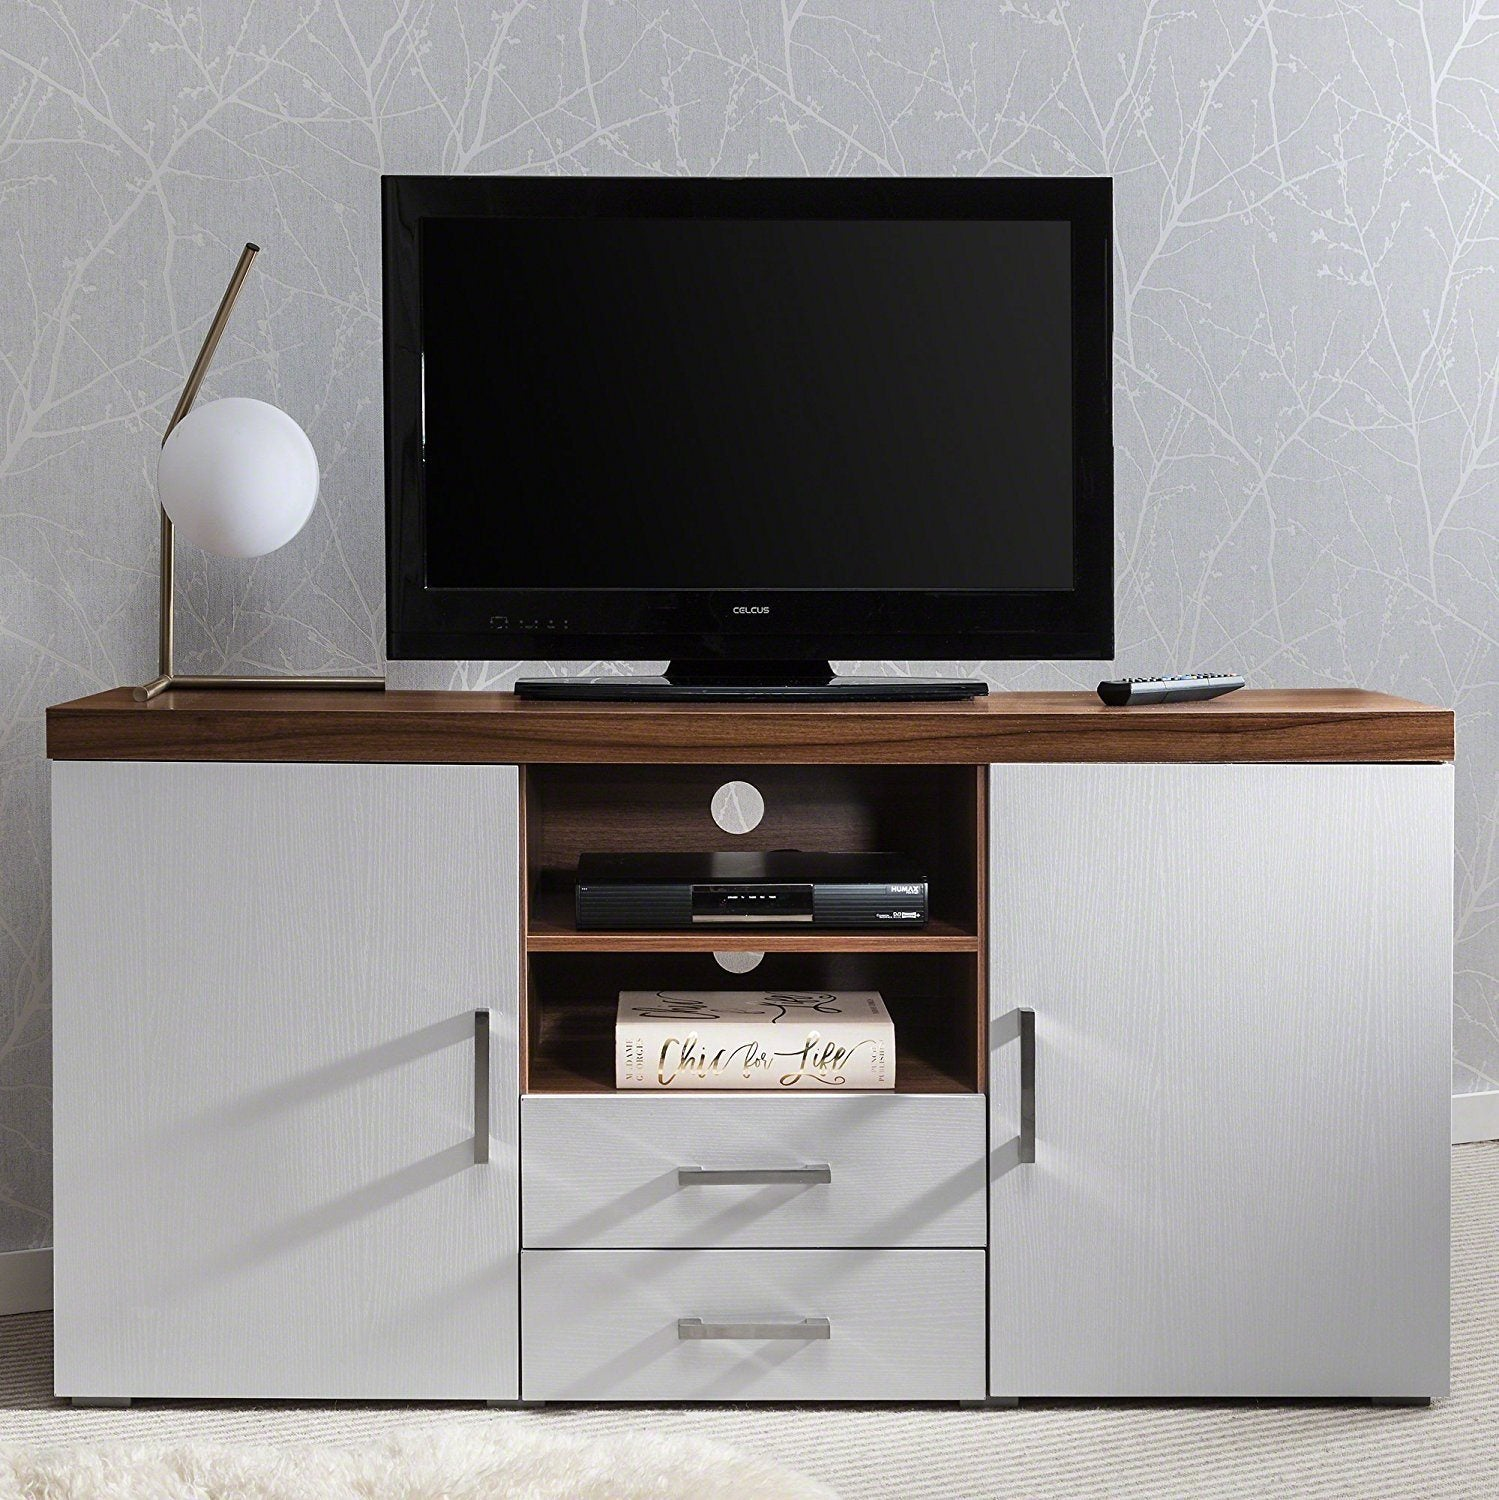 online retailer 7c21c 5325e Sideboard / TV Cabinet with drawer and shelves Walnut/White